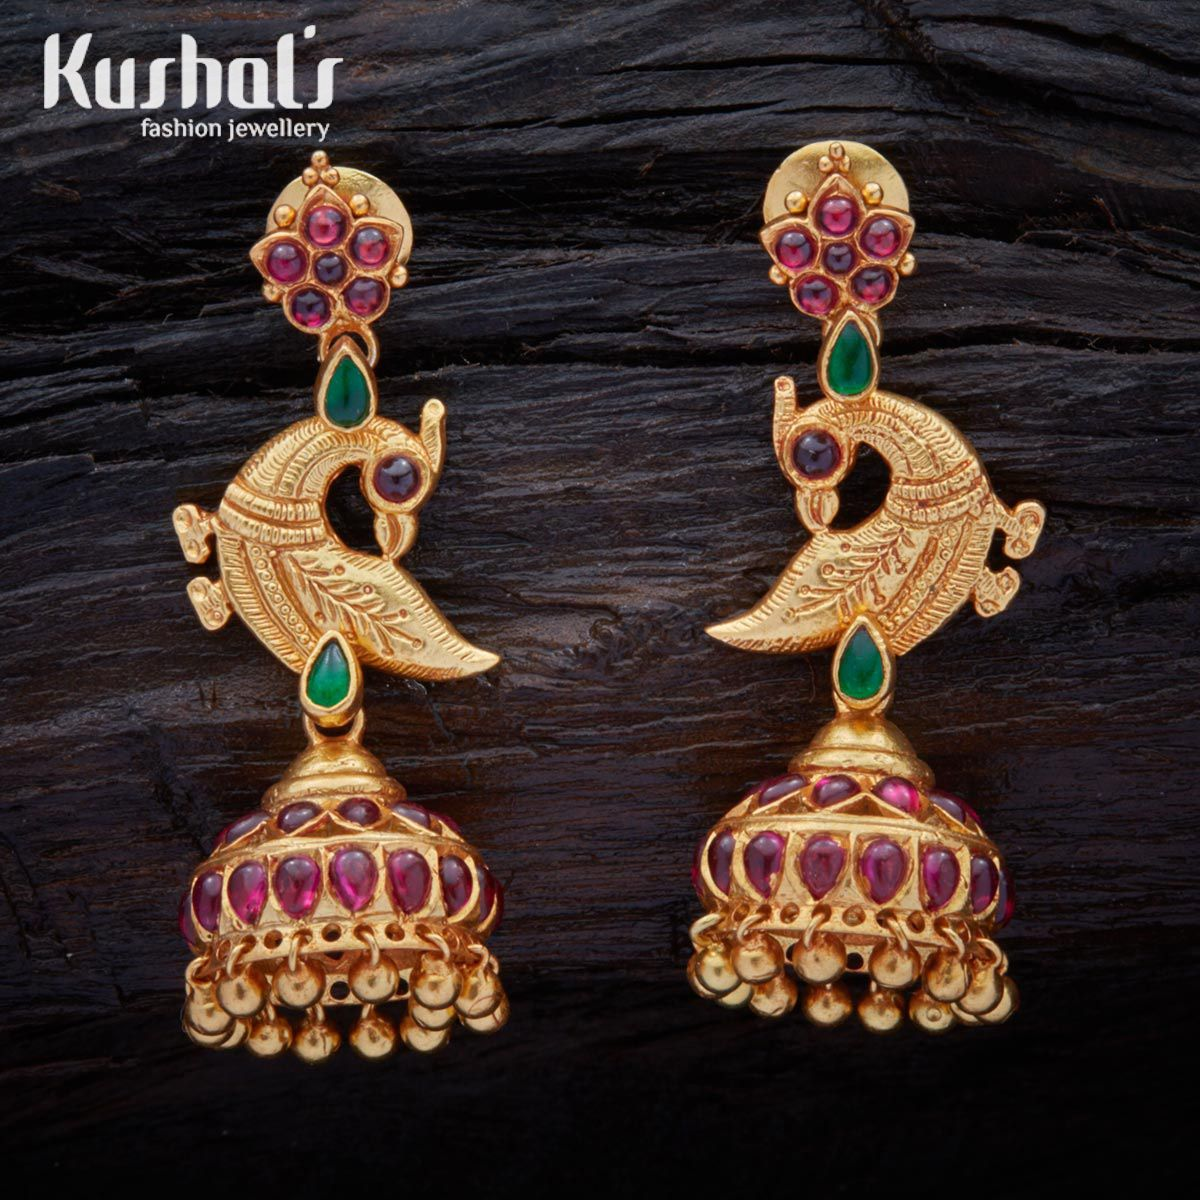 beautifully crafted south indian traditional silver temple peacock earrings with hanging beads